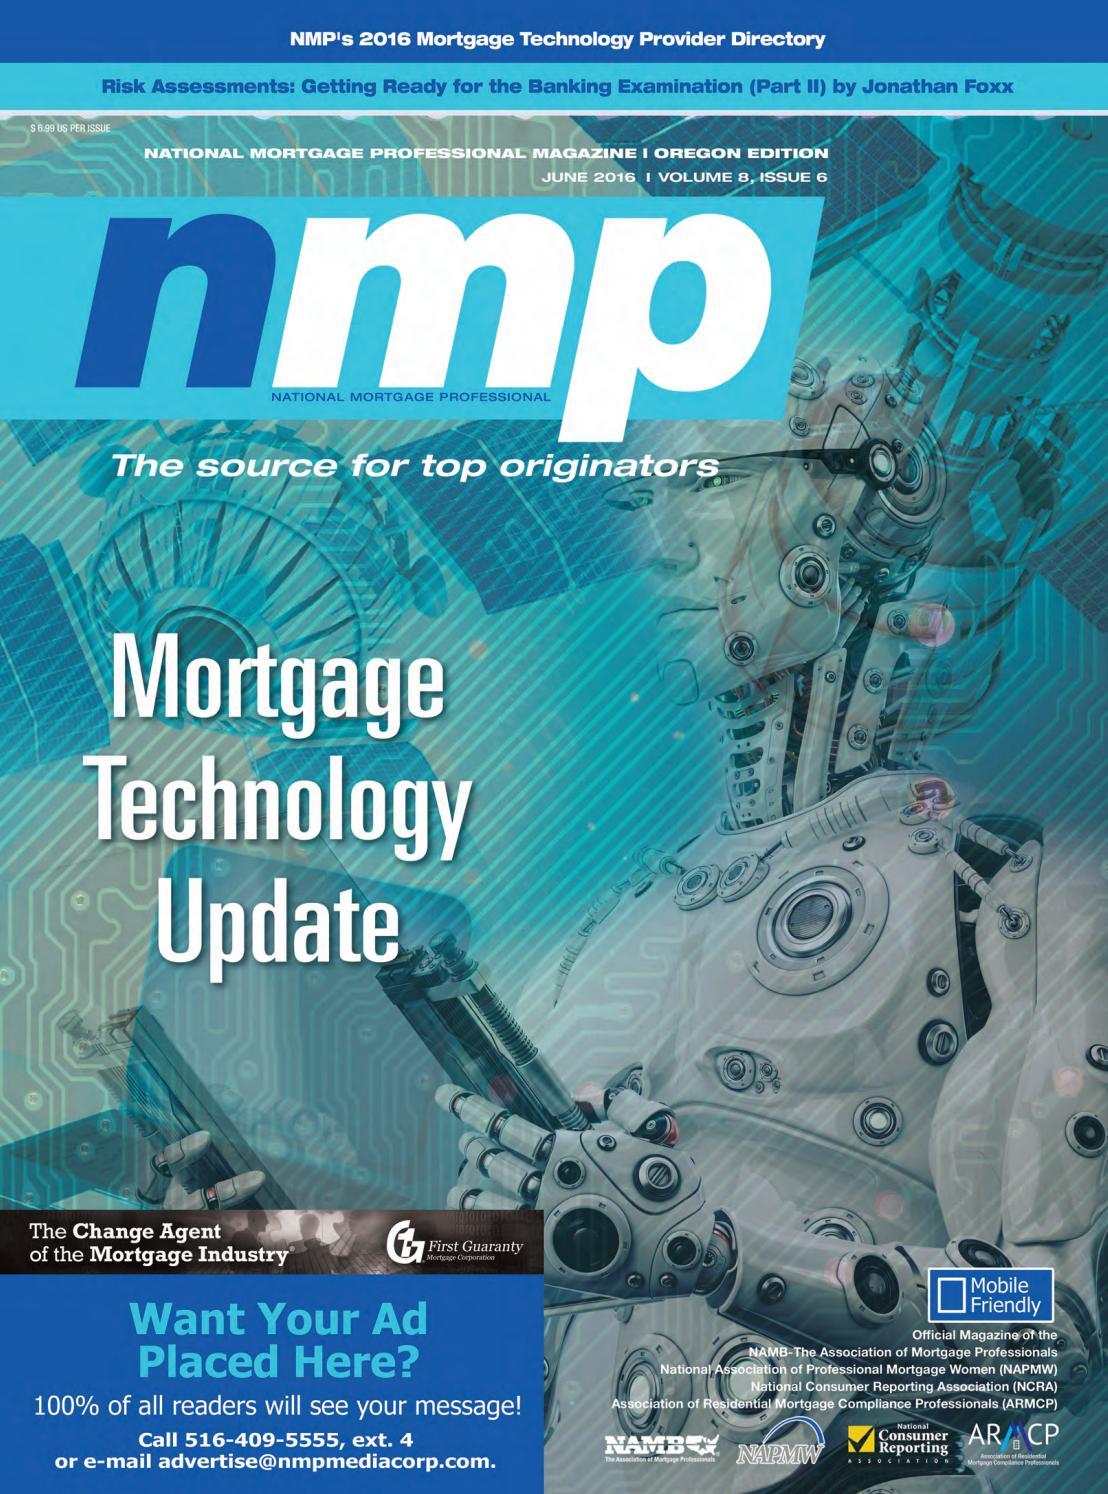 Oregon Mortgage Professional Magazine June 2016 By Nmp Media Corp Google Play Gift Card Rp 150000 Issuu